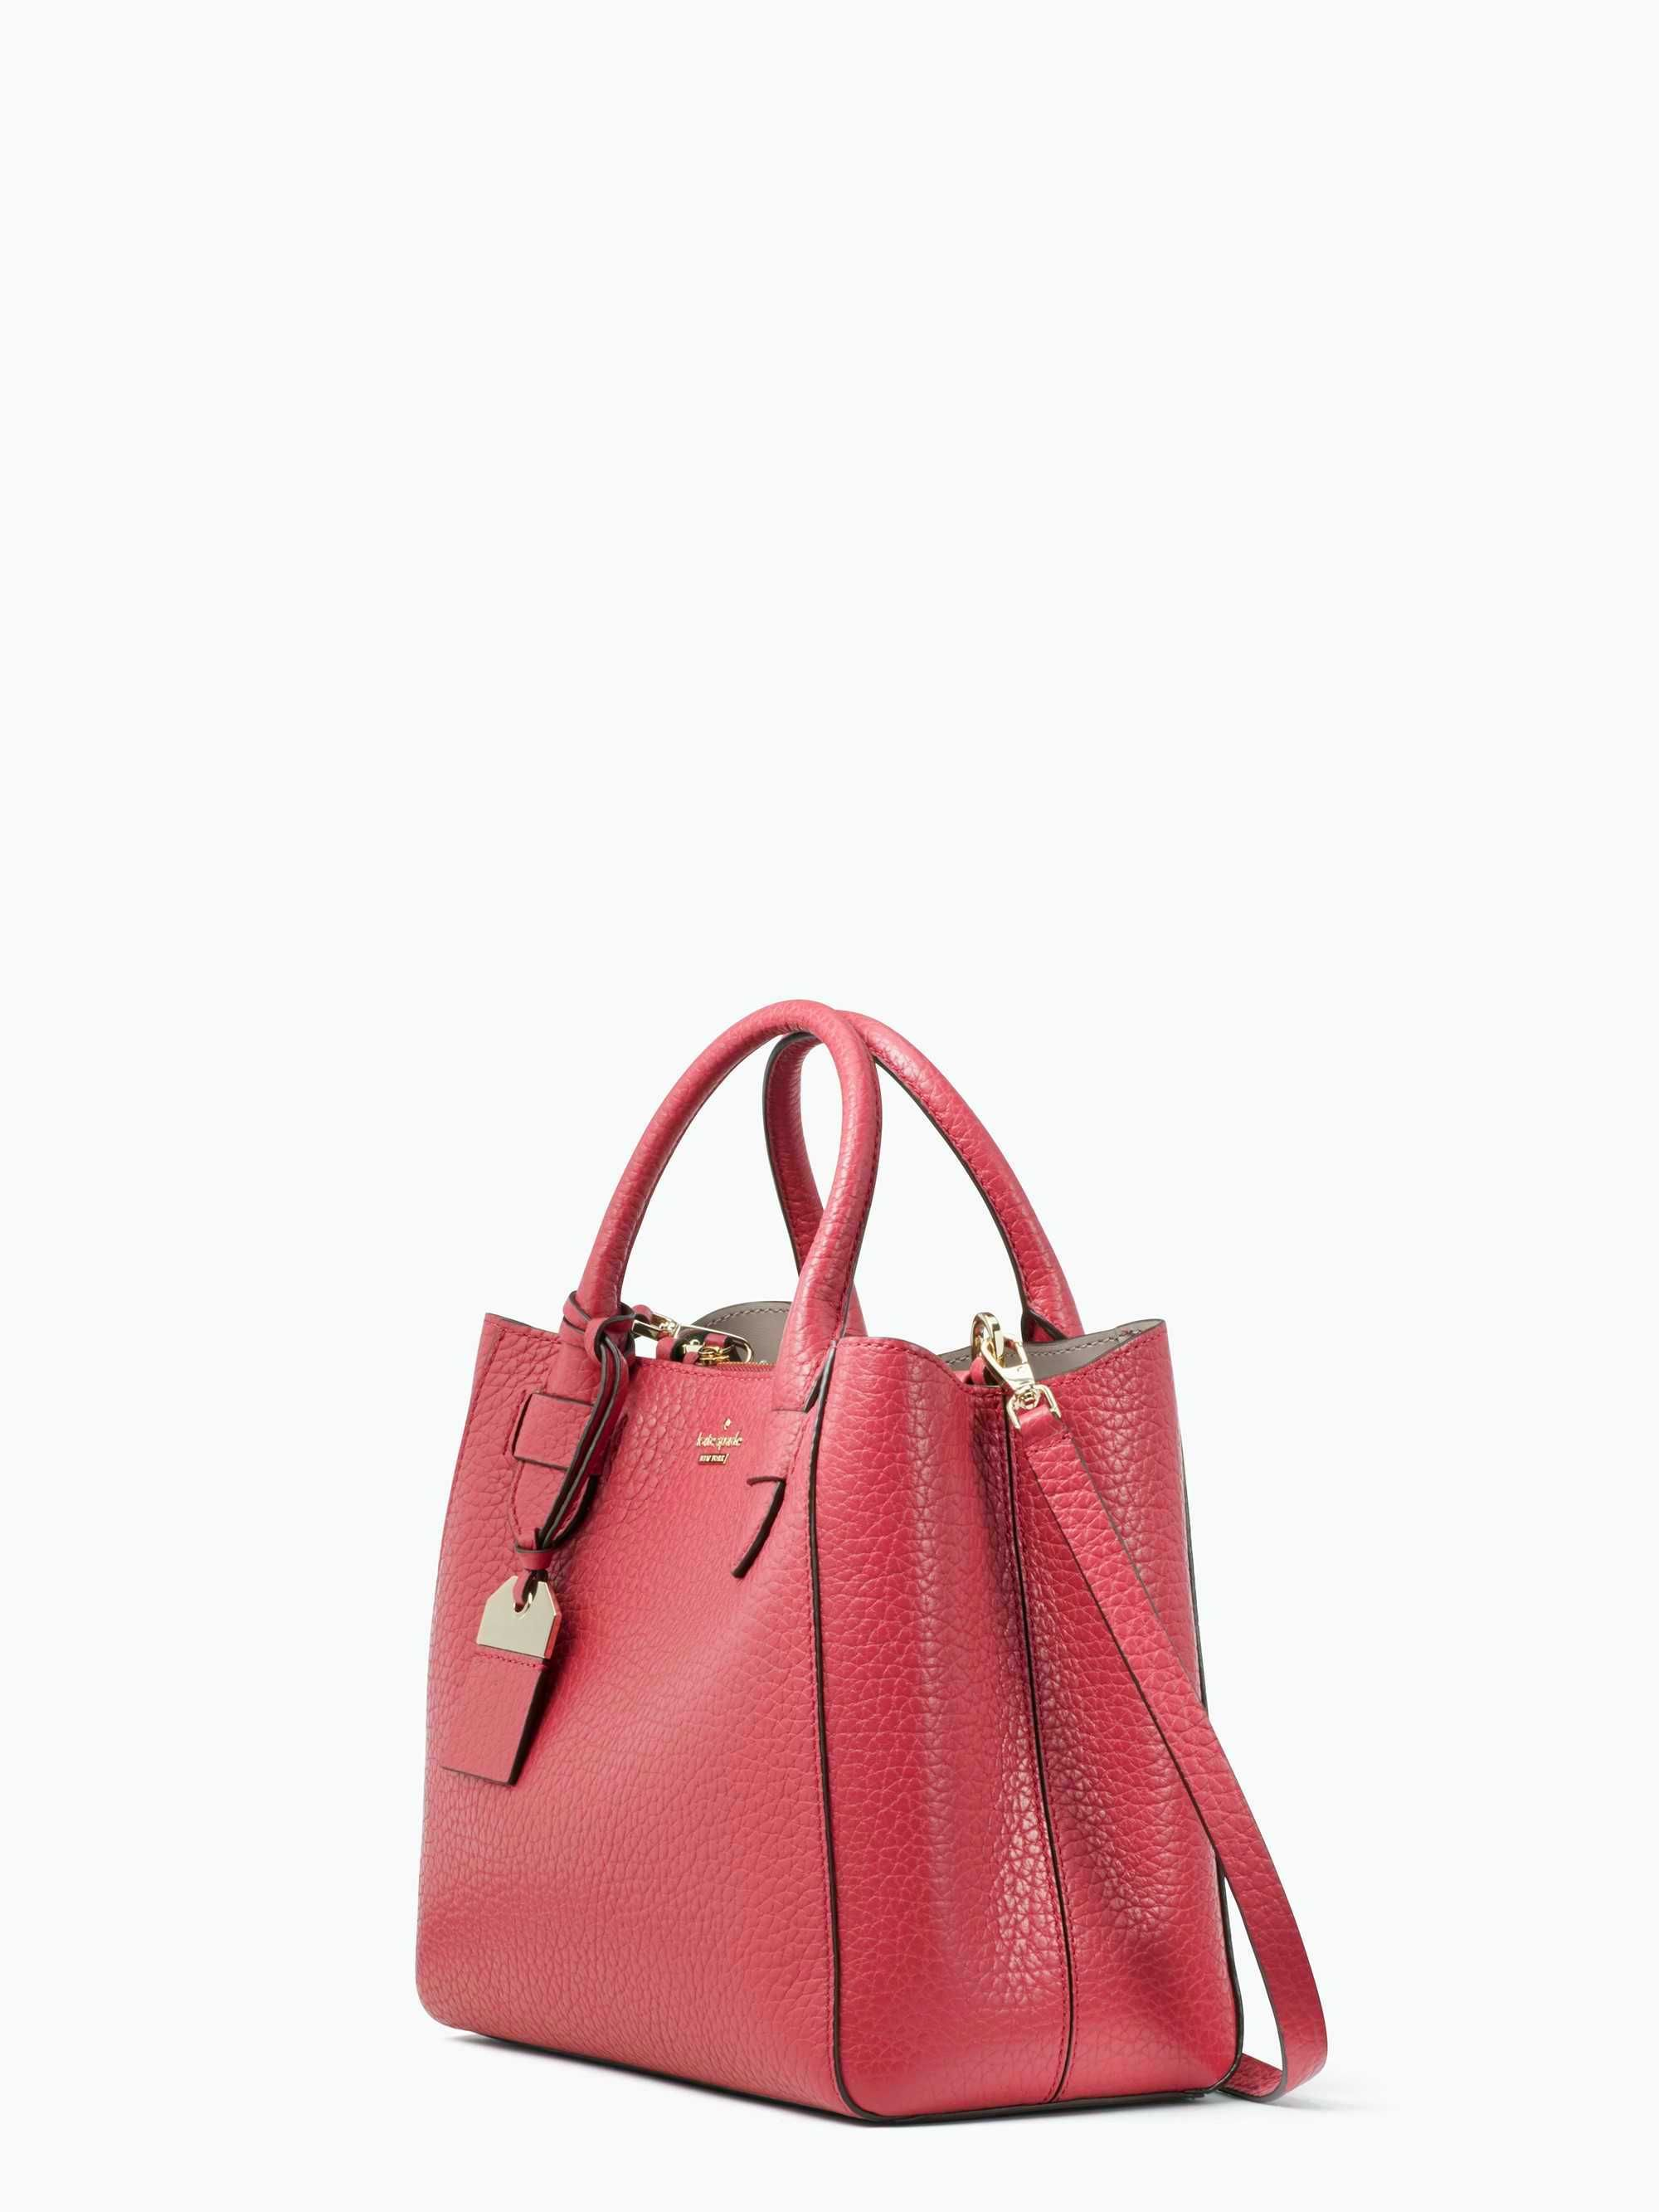 Kate Spade London Purses Style With High Quality Online